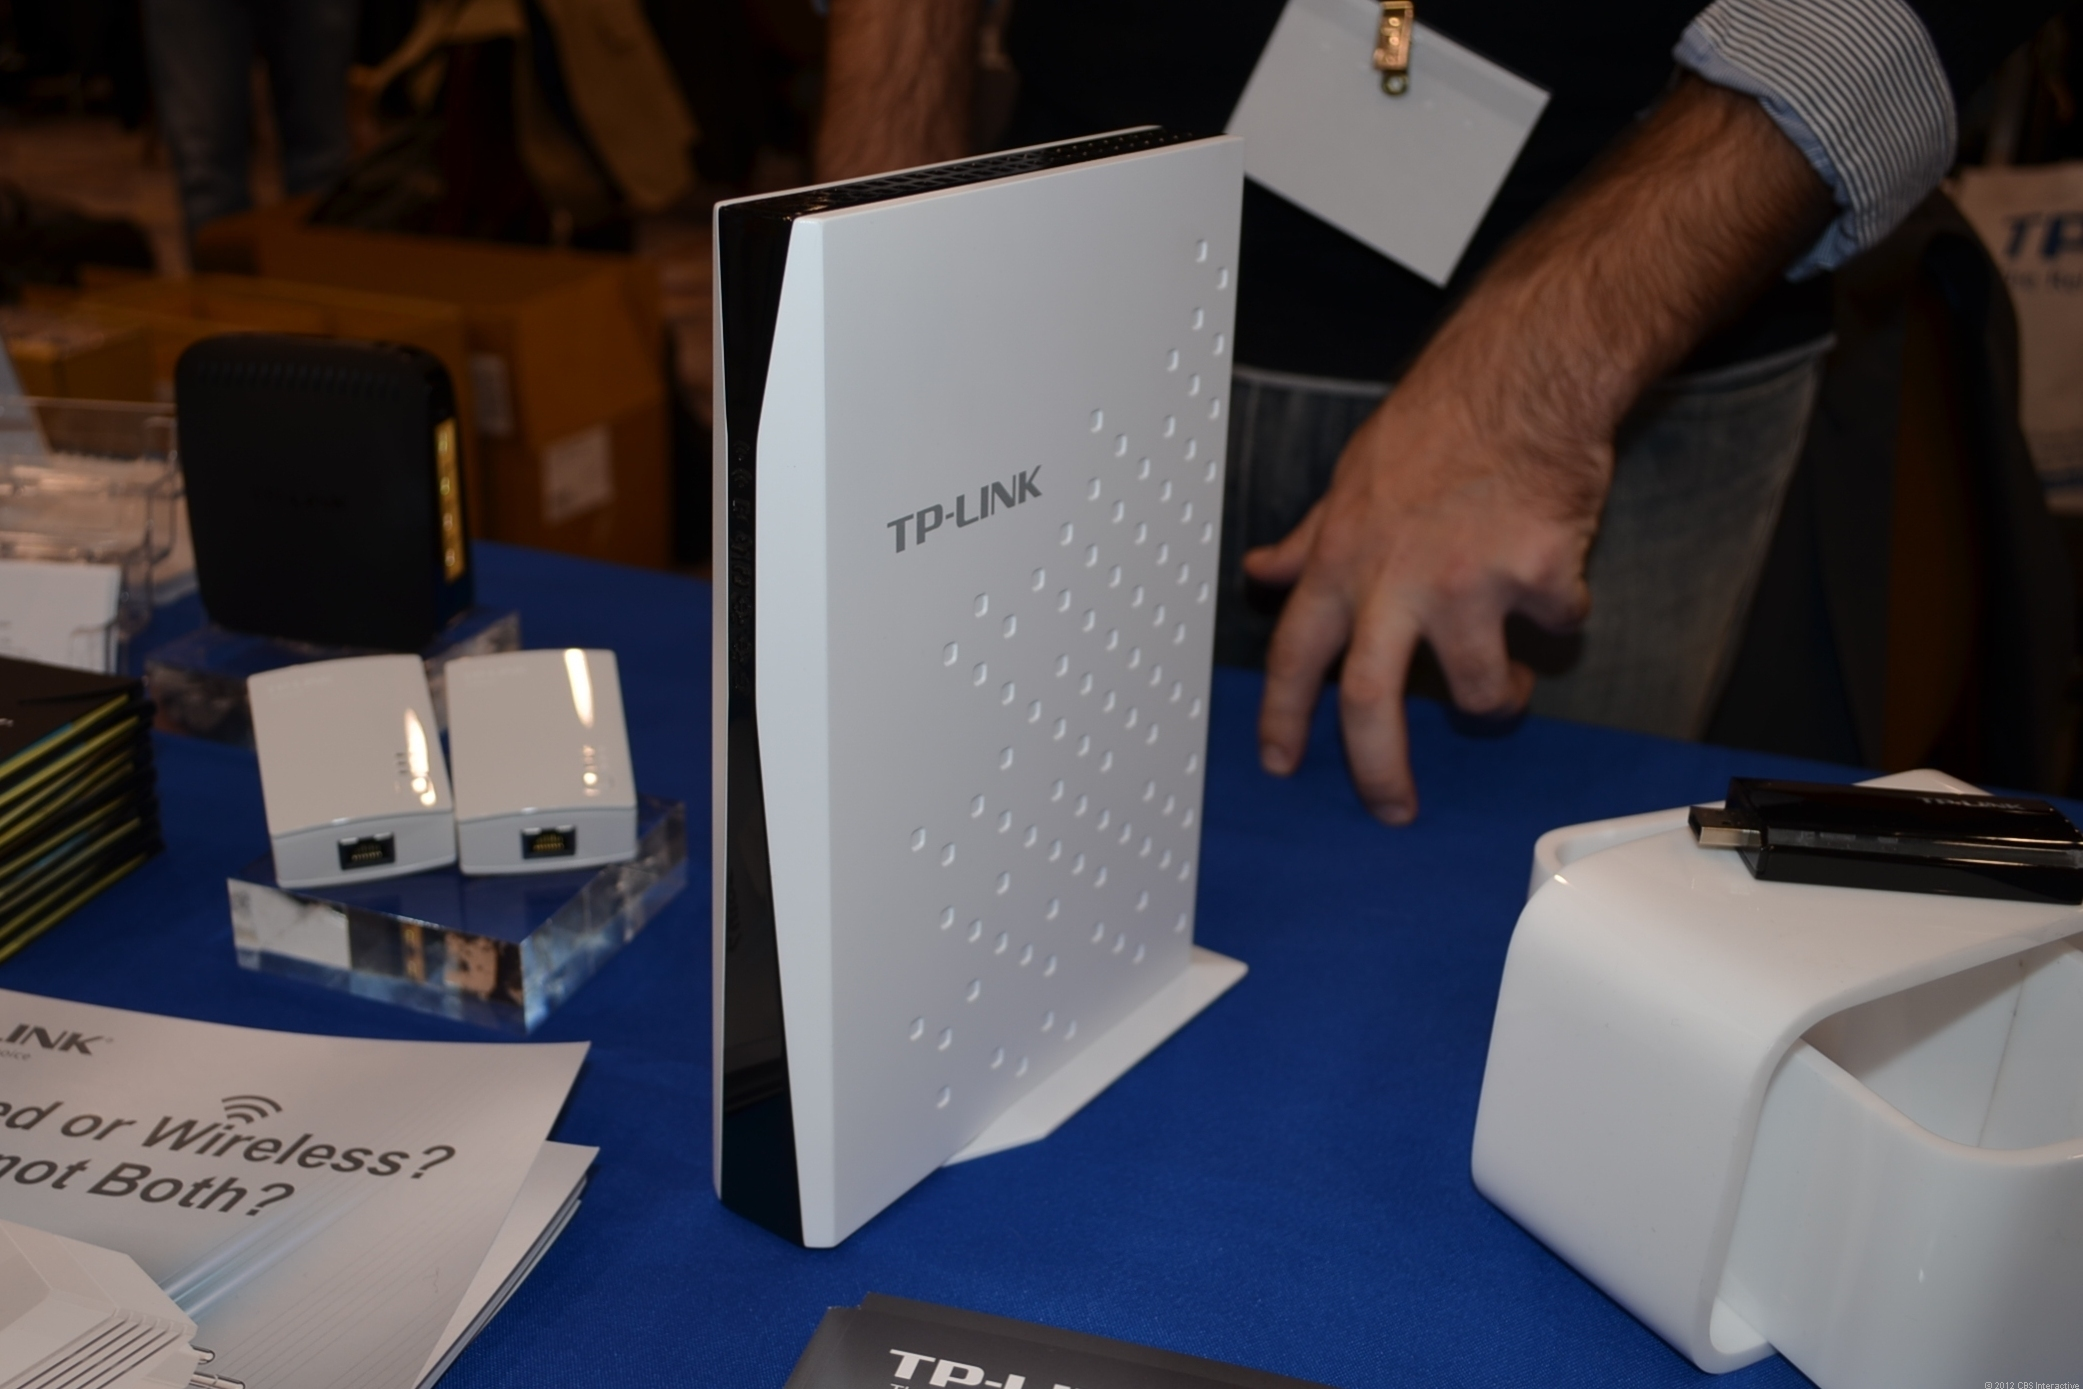 TP-Link showing off its first 802.11ac router, the TL-WDR7500, at CES 2013.